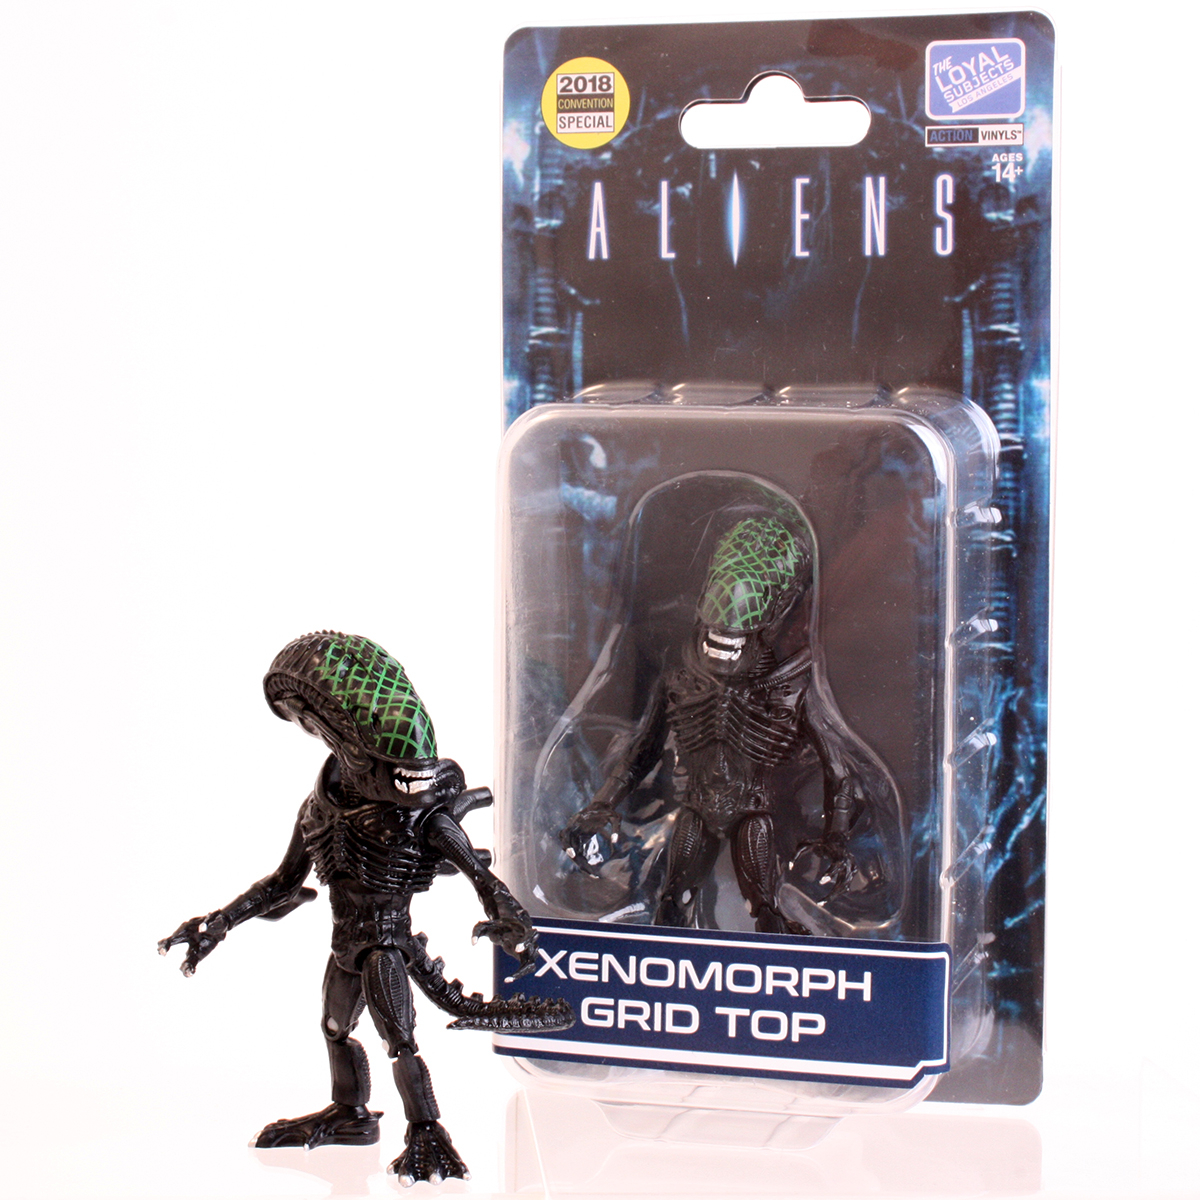 The Loyal Subject: Aliens Xenemorph Grid Top (Seared head Alien Warrior) LIMITED